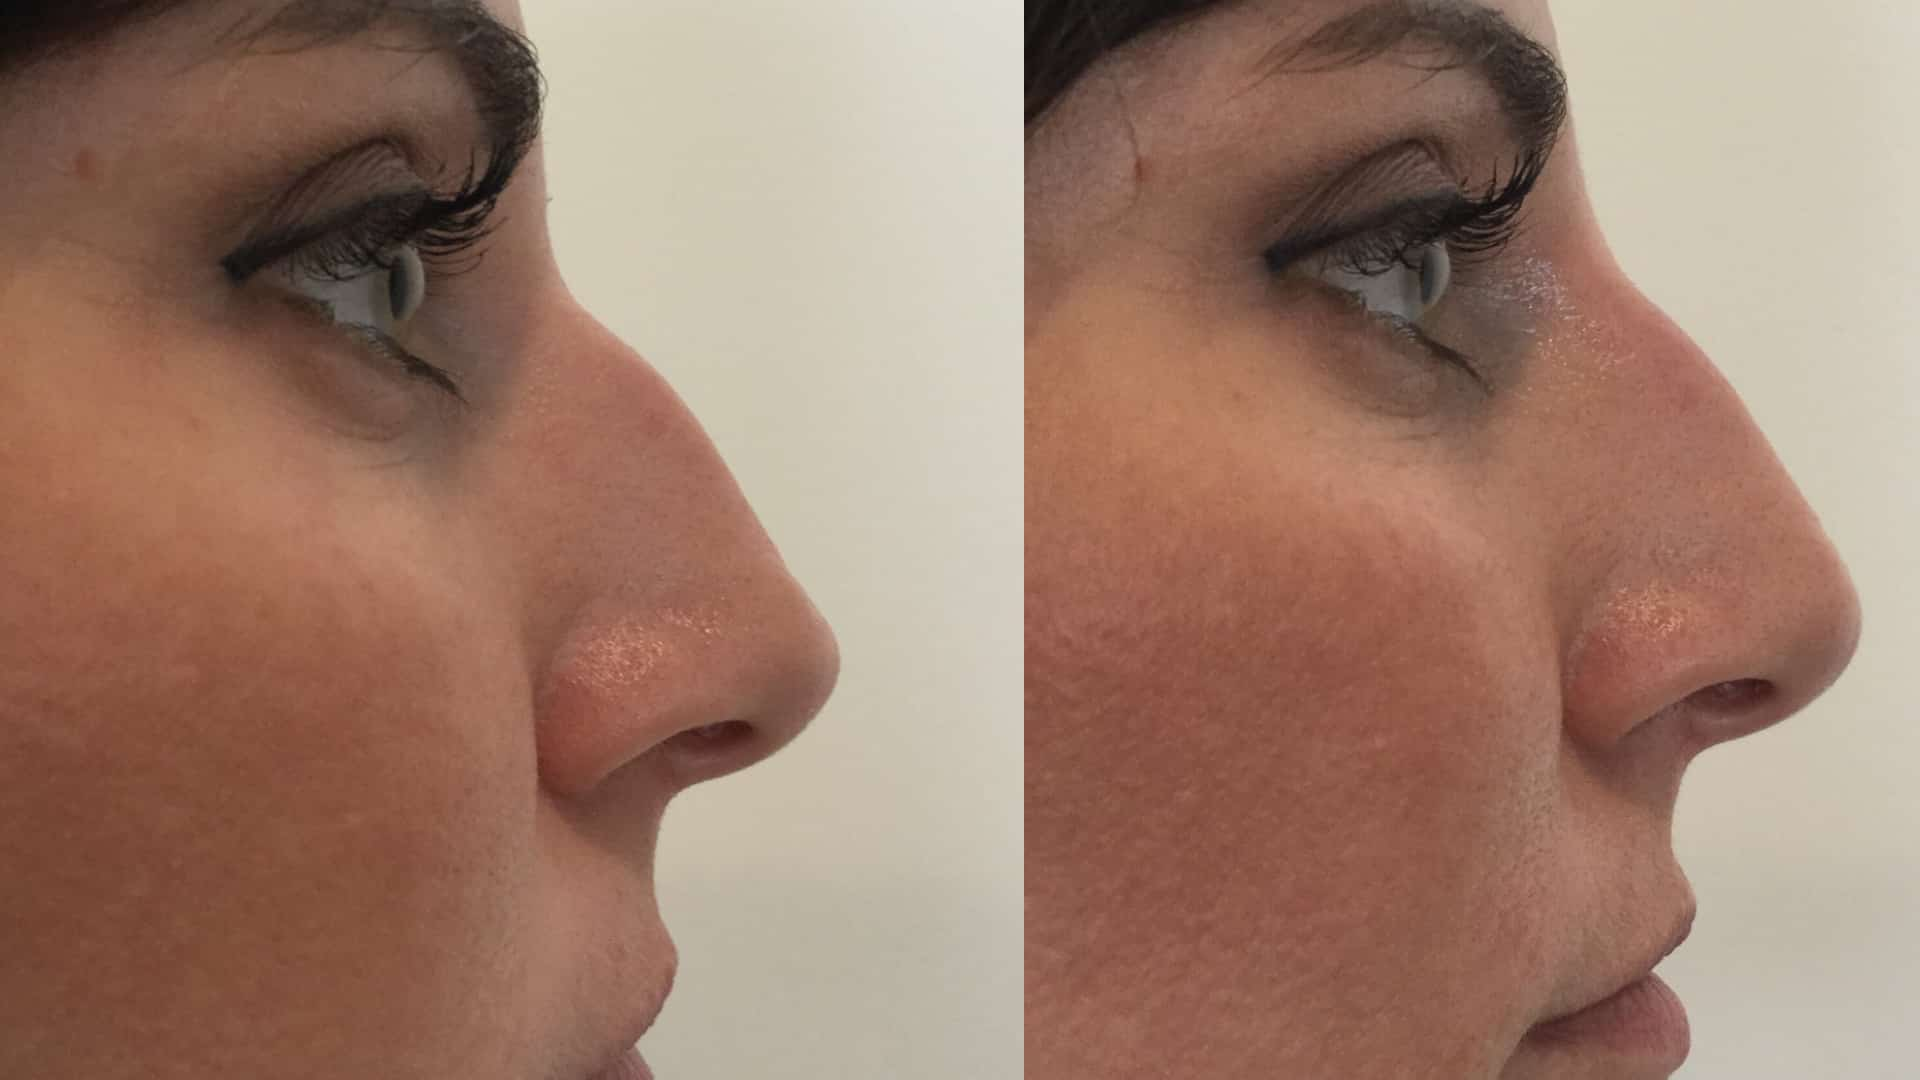 If You Have Ever Considered A Nose Job This Is The Procedure For You. Drastically Improve The Shape Of Your Nose With A Simple In Office Visit.